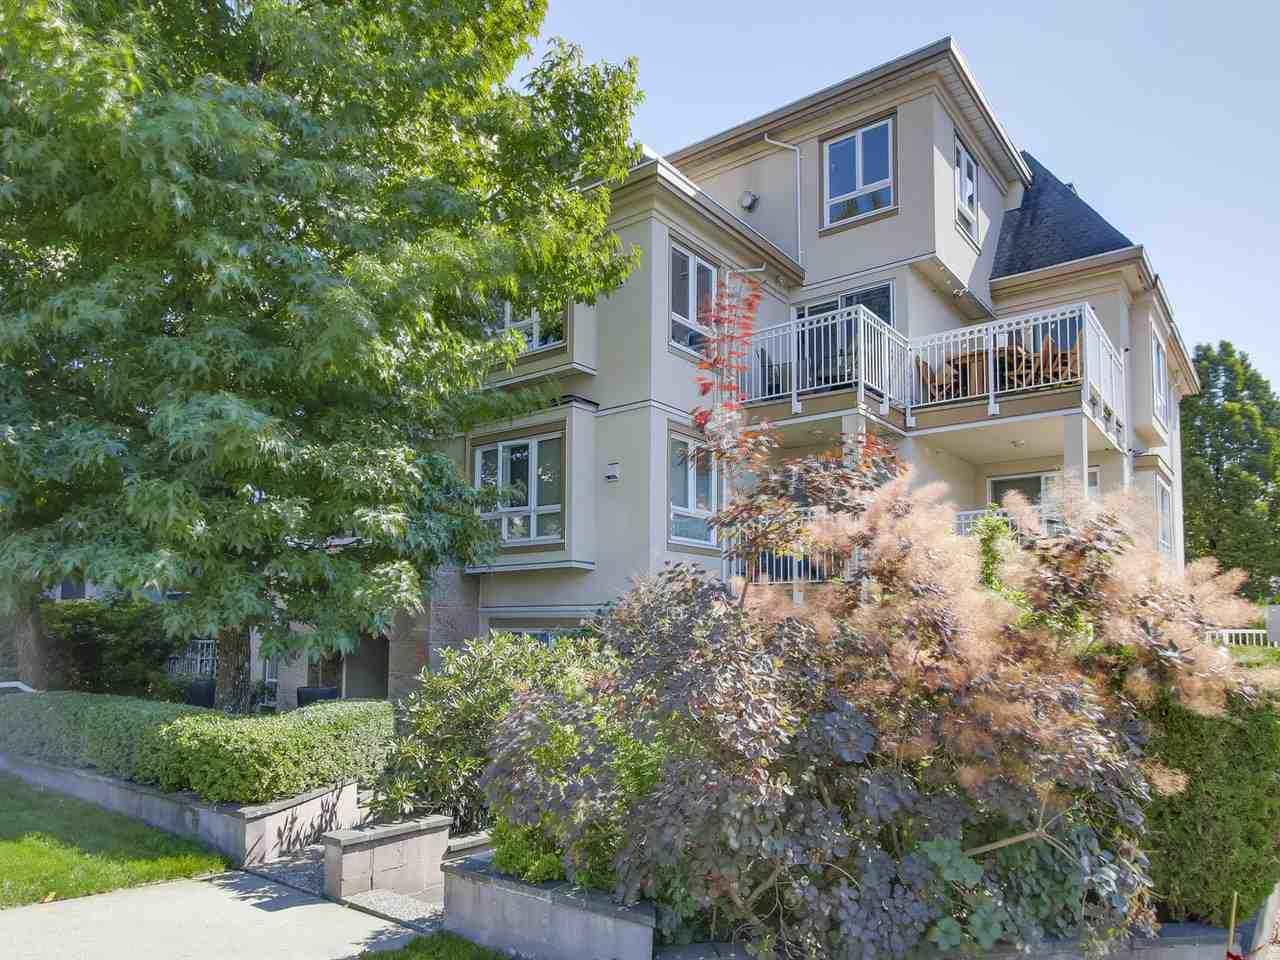 401 228 E 14TH AVENUE, Vancouver, BC, V5T 2M6 Primary Photo